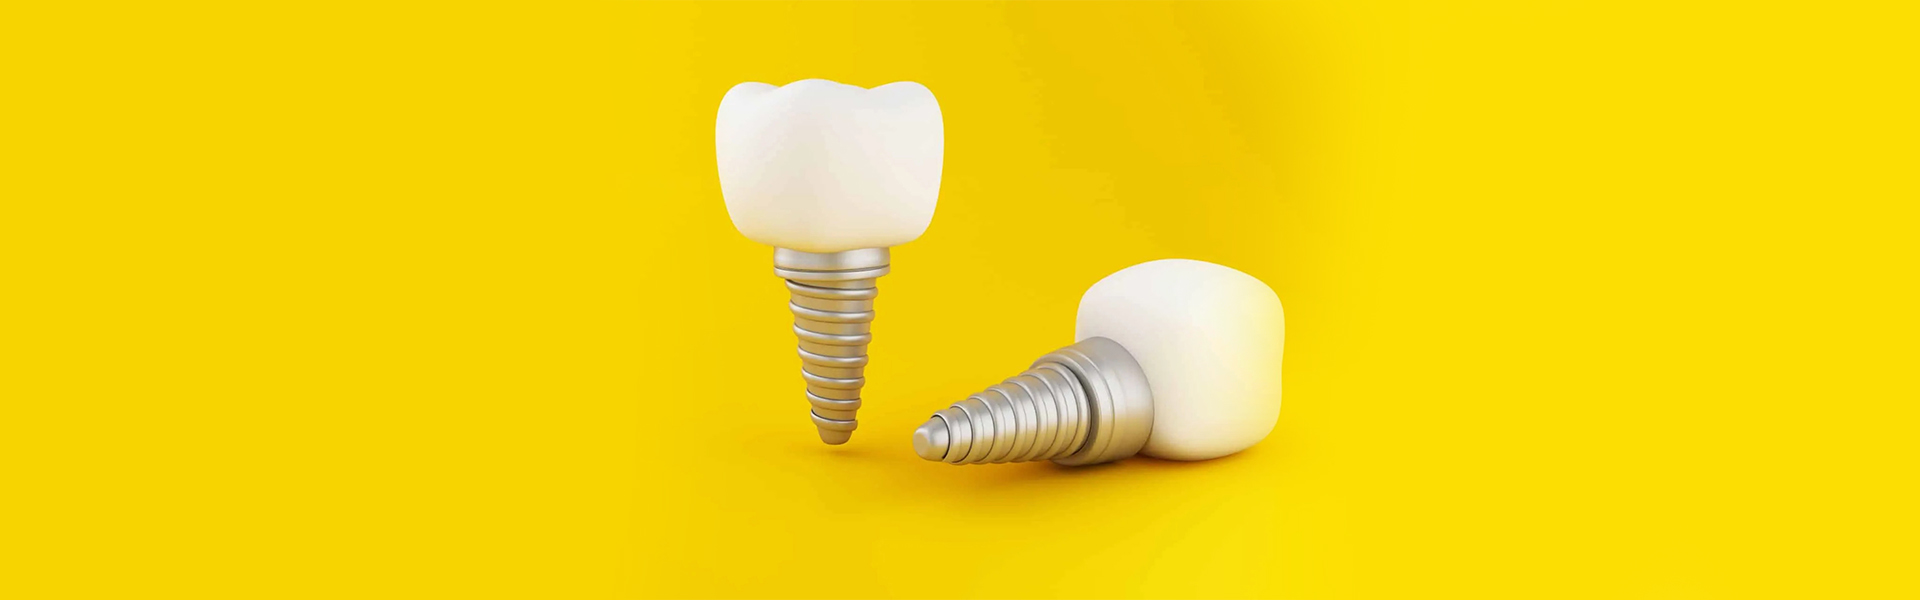 Dental Implants: What are they? Types, fixing, benefits, and risks